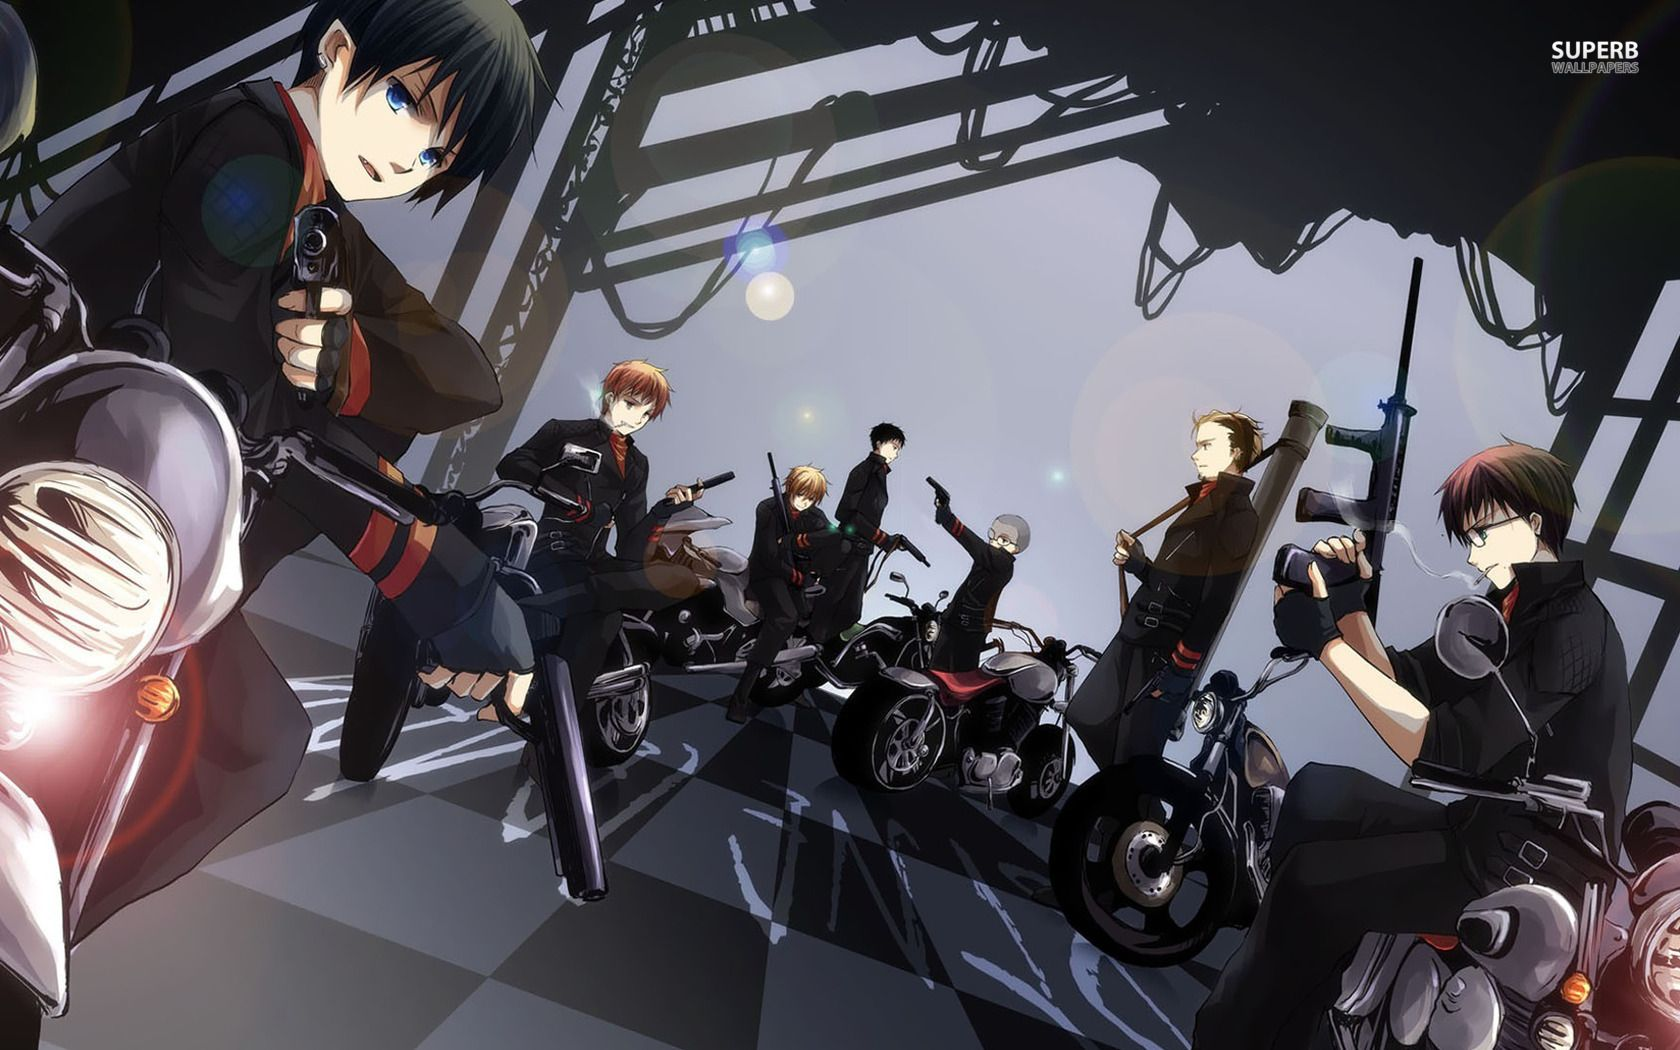 Black Exorcist Anime Ao No Exorcist Wallpaper Anime Wallpapers